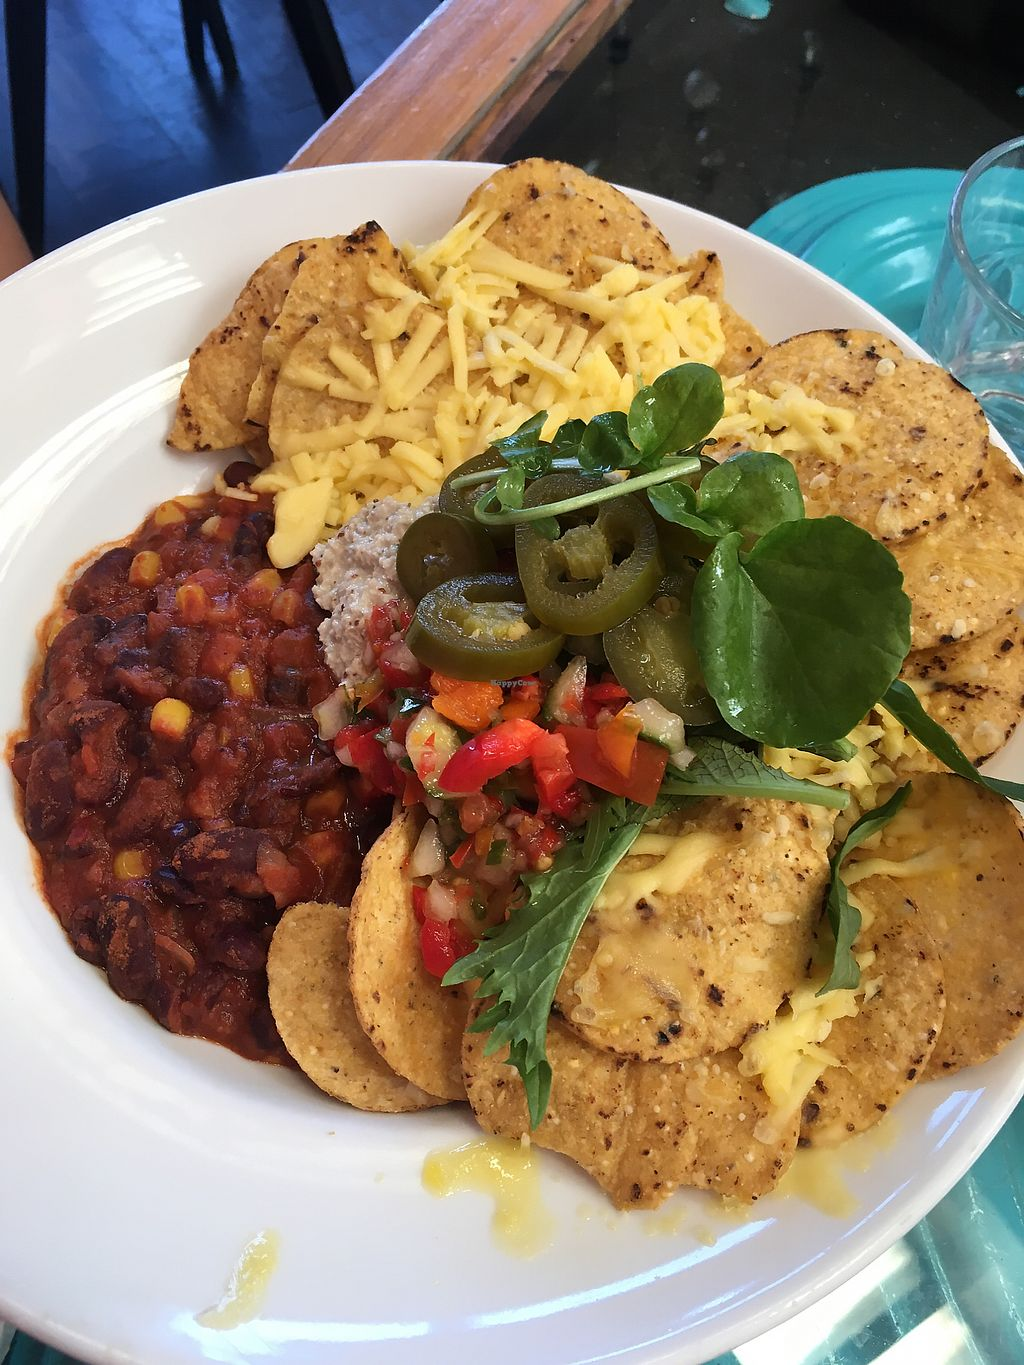 """Photo of East St Vegetarian Cafe and Bar  by <a href=""""/members/profile/perkonius"""">perkonius</a> <br/>Nachos <br/> December 9, 2017  - <a href='/contact/abuse/image/37335/333666'>Report</a>"""